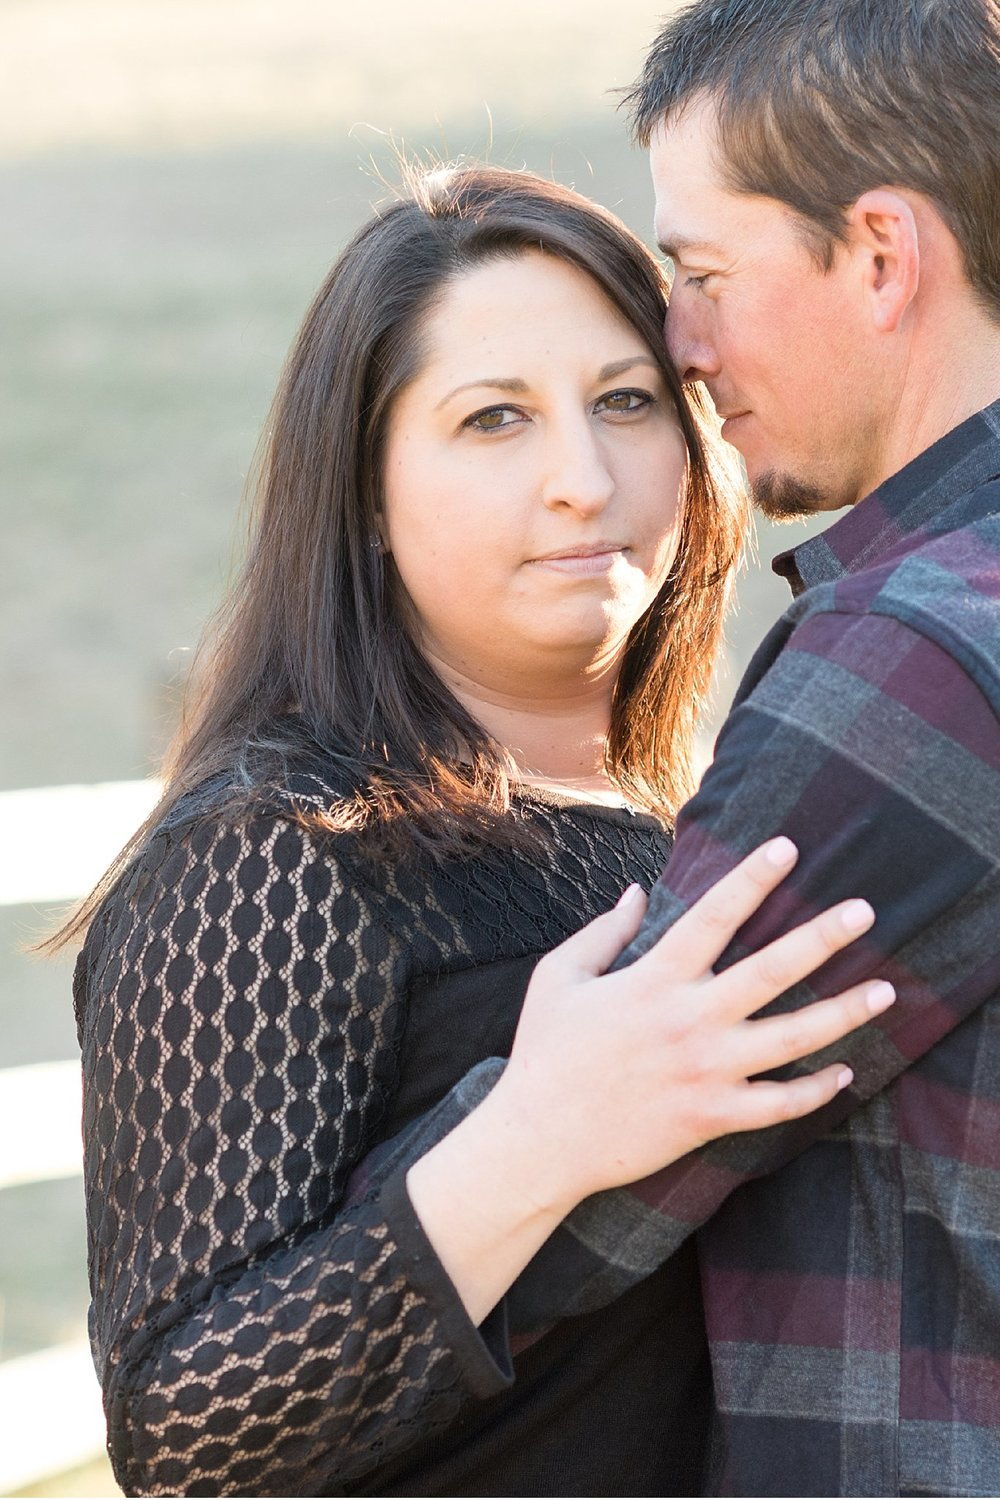 New Providence orchard Lancaster County Wedding and engagement photographer photo_0943.jpg